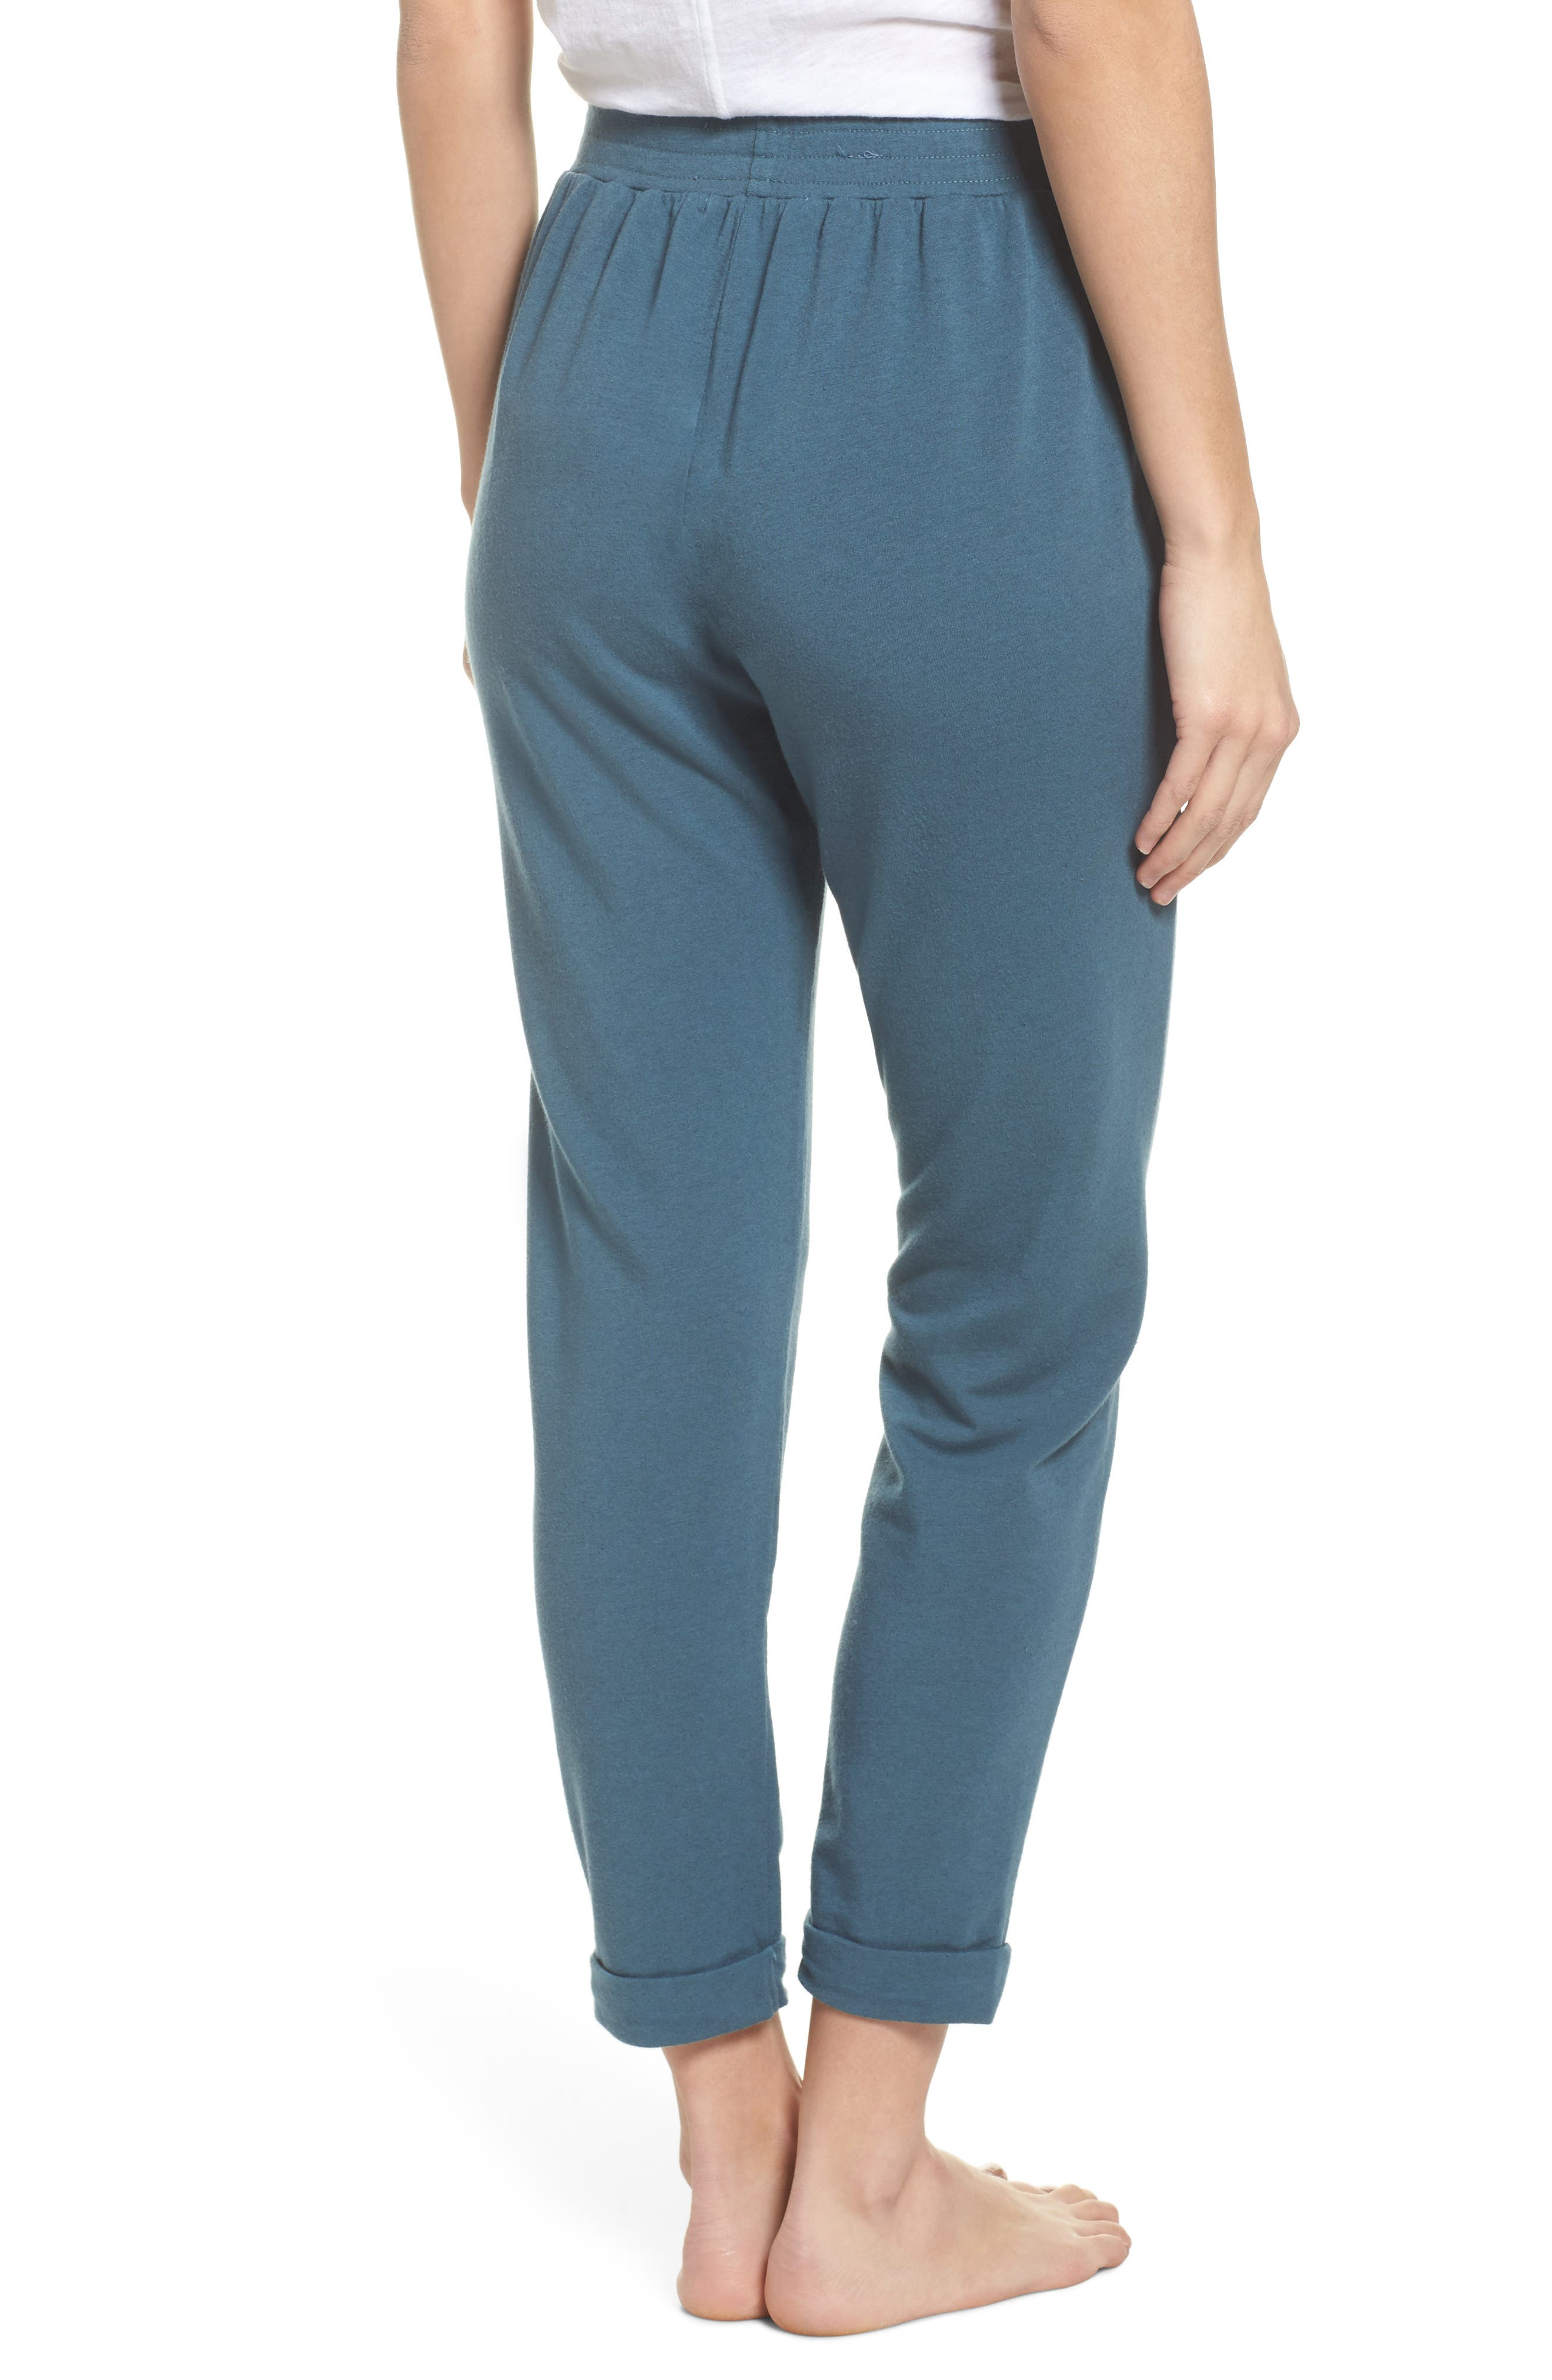 French Terry Sweatpants,                             Alternate thumbnail 2, color,                             Royal Teal